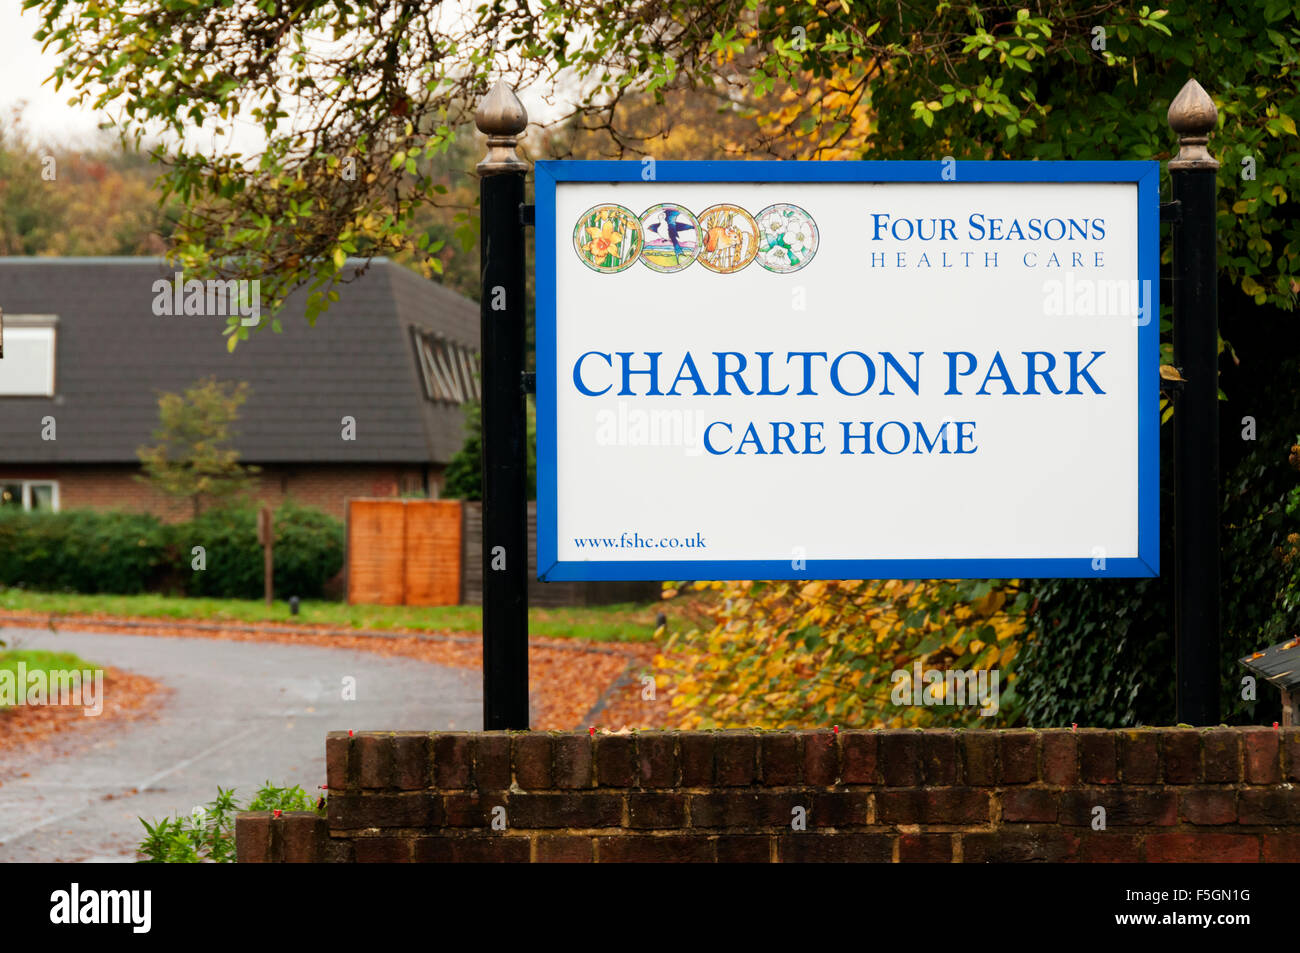 Sign At The Entrance To Charlton Park Care Home Run By Four Seasons Health